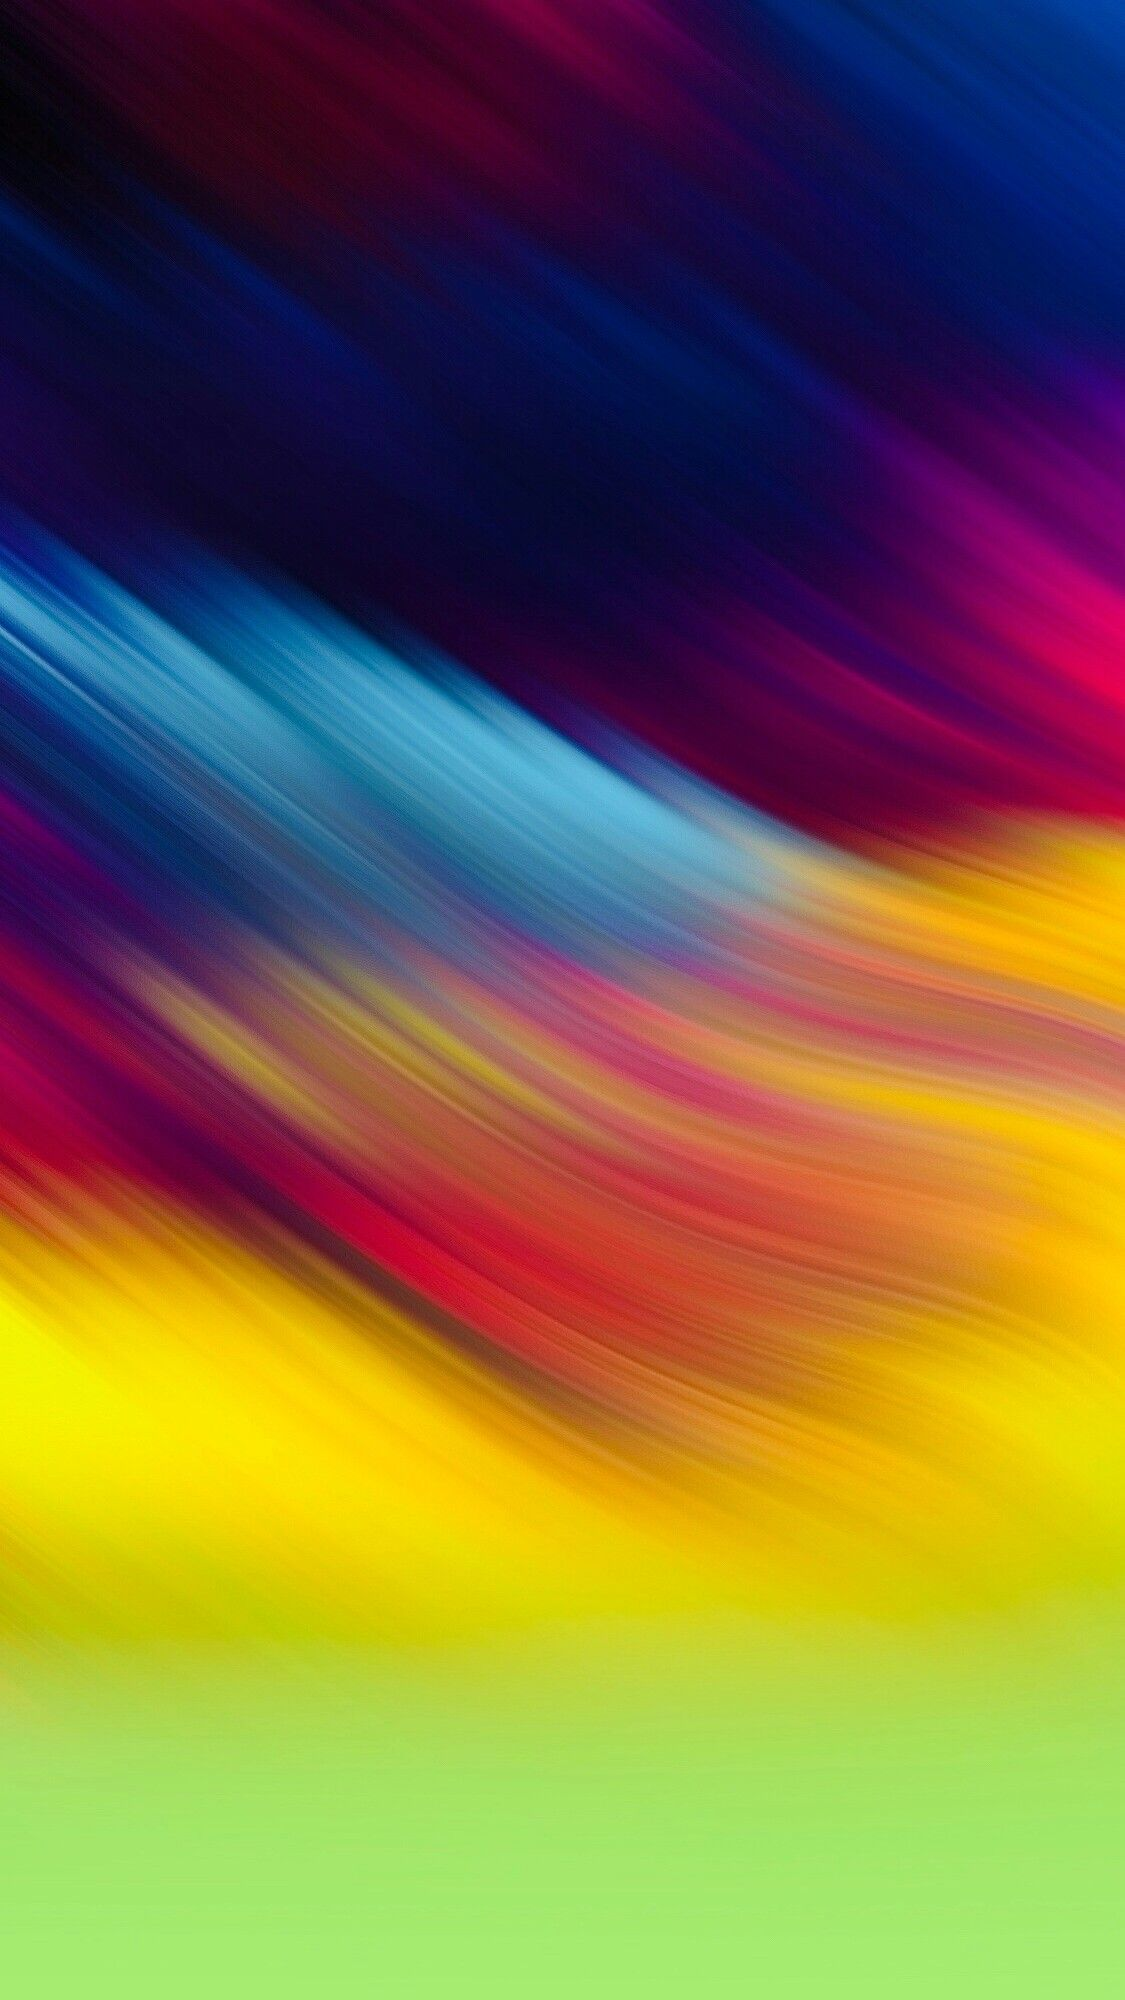 Multi color Abstract iphone wallpaper, Colorful